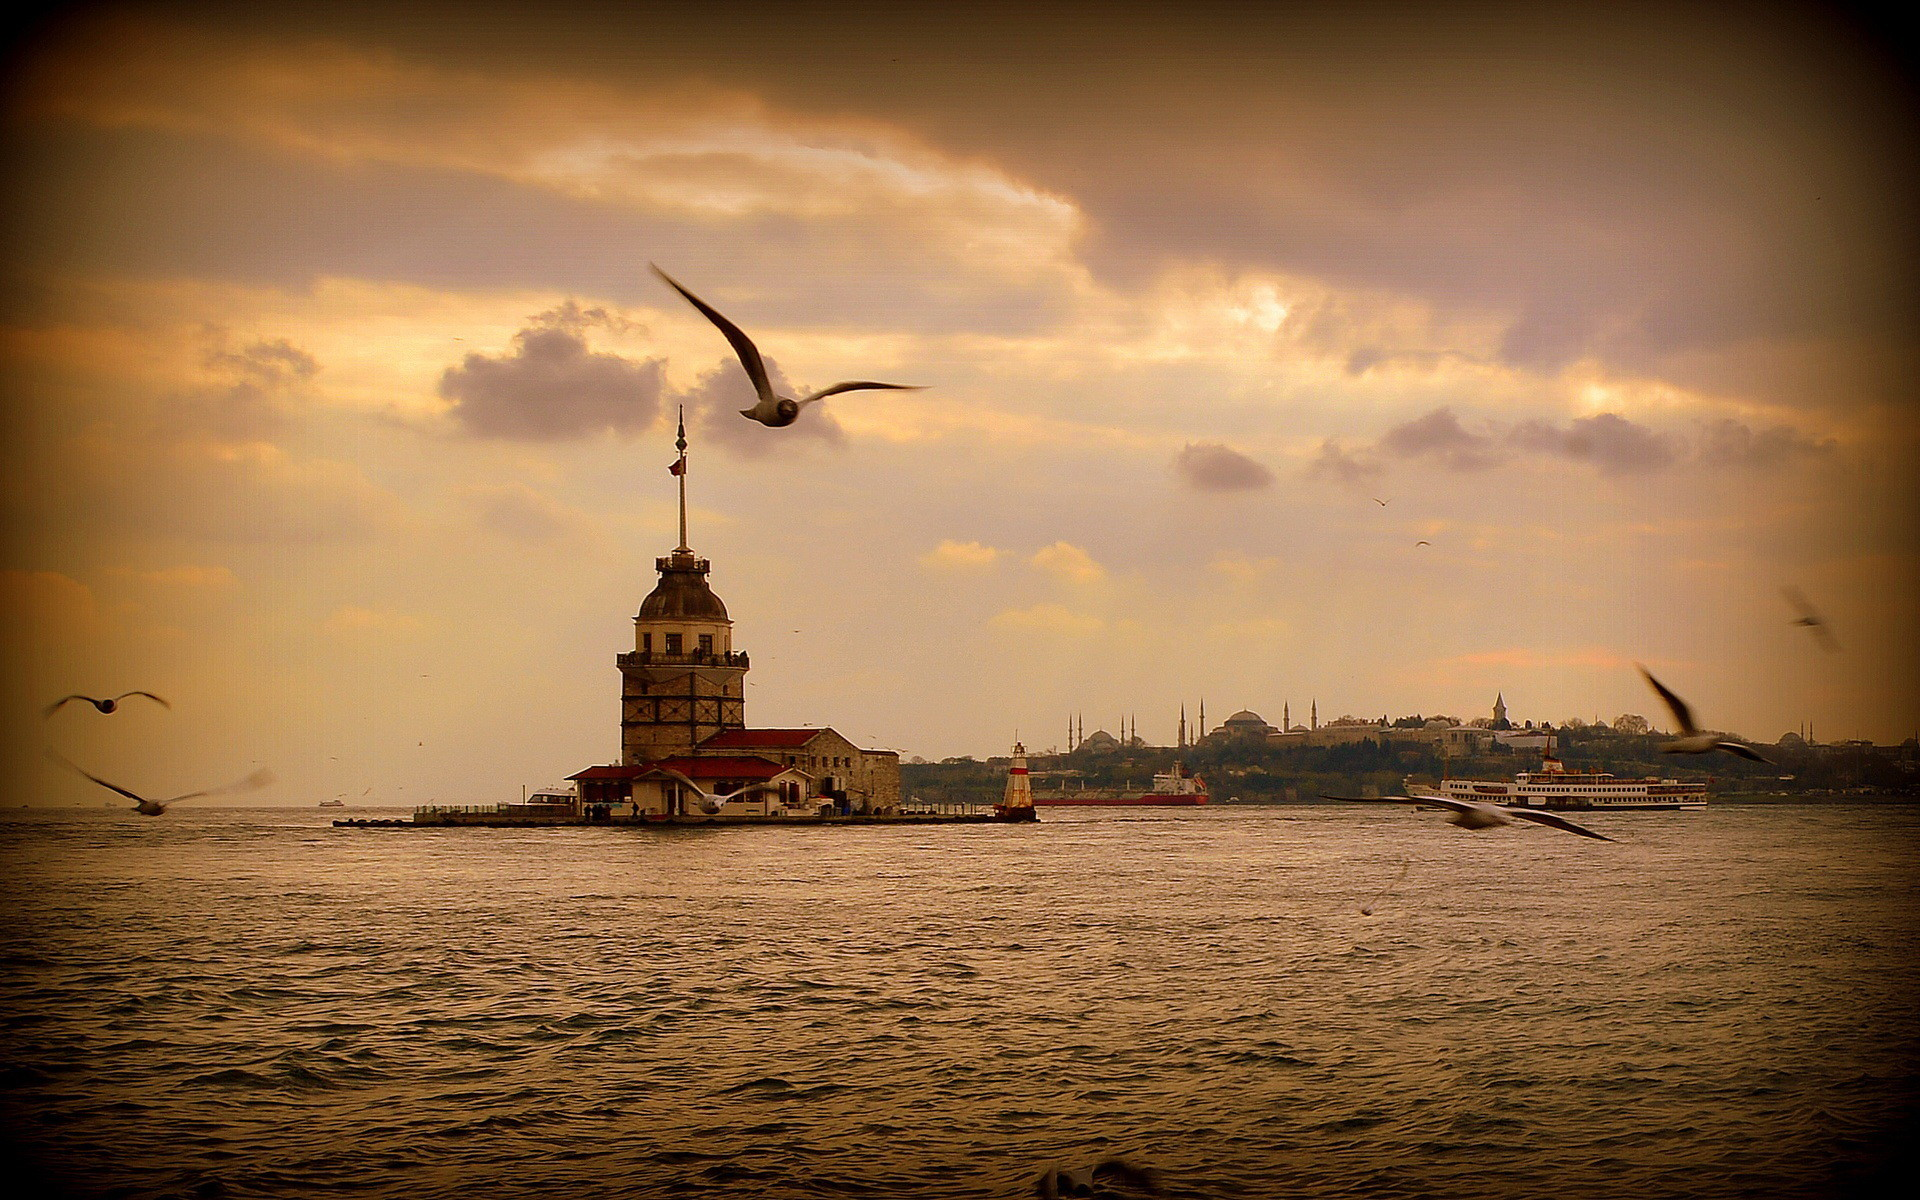 Res: 1920x1200, High Definiton Wallpapers in the Nature Background named as Istanbul, Turkey  Wallpapers in 4K are listed above. We have found some of the best wallpapers  ...